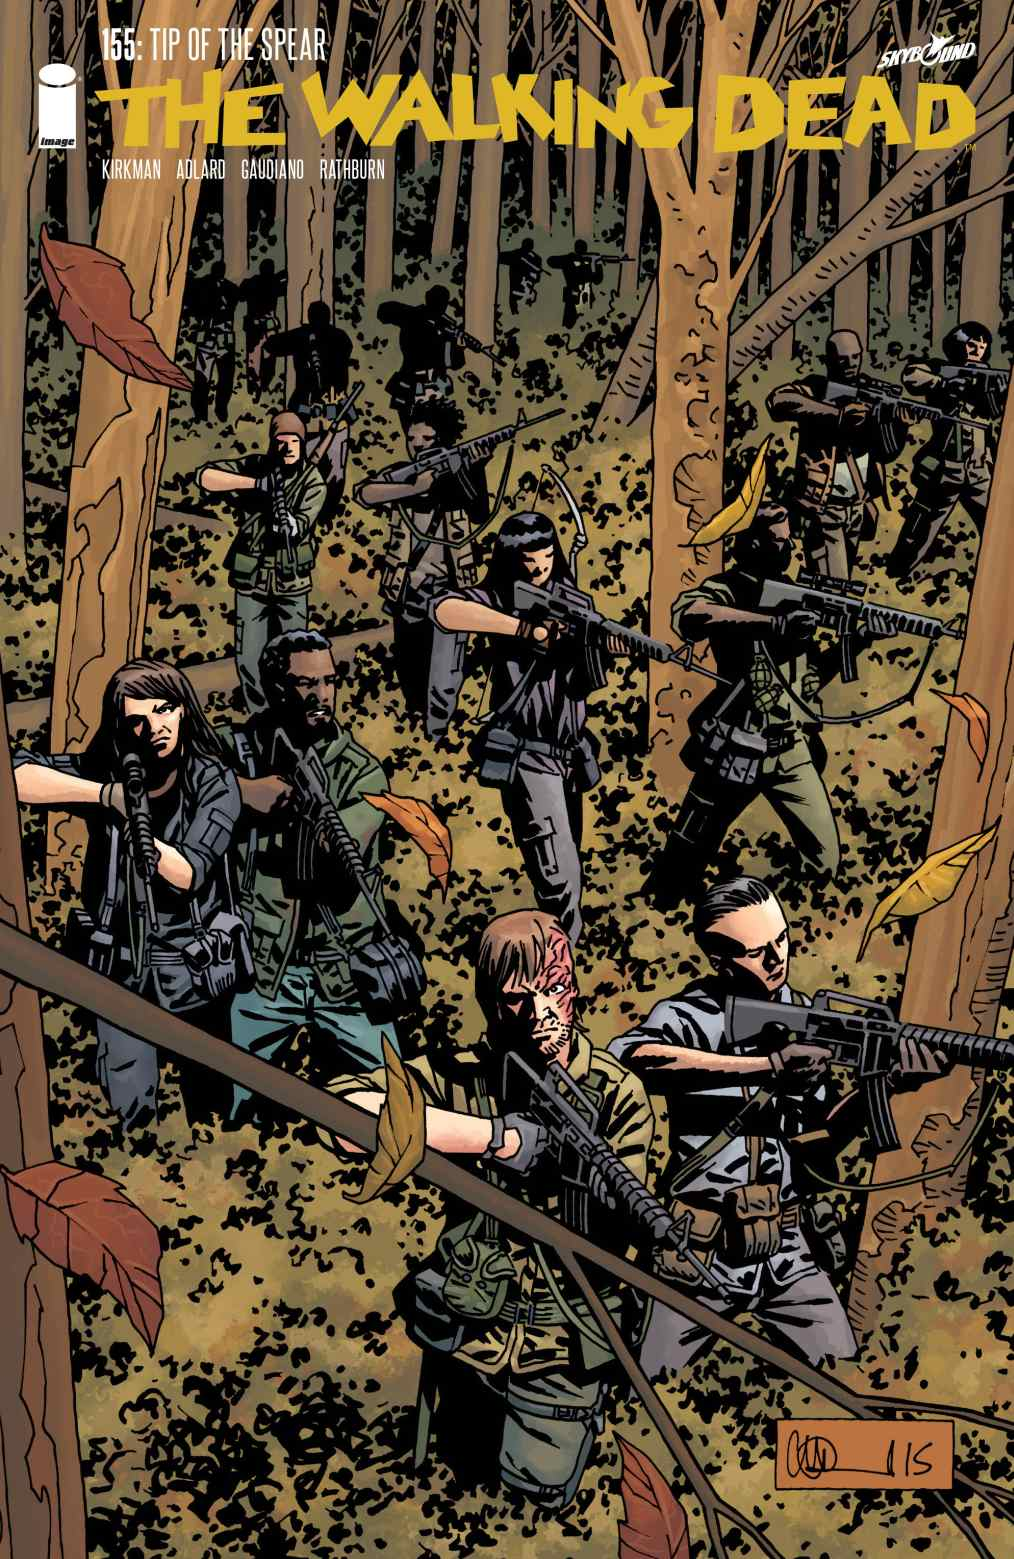 Read Comics Online Free - The Walking Dead - Chapter 155 ...